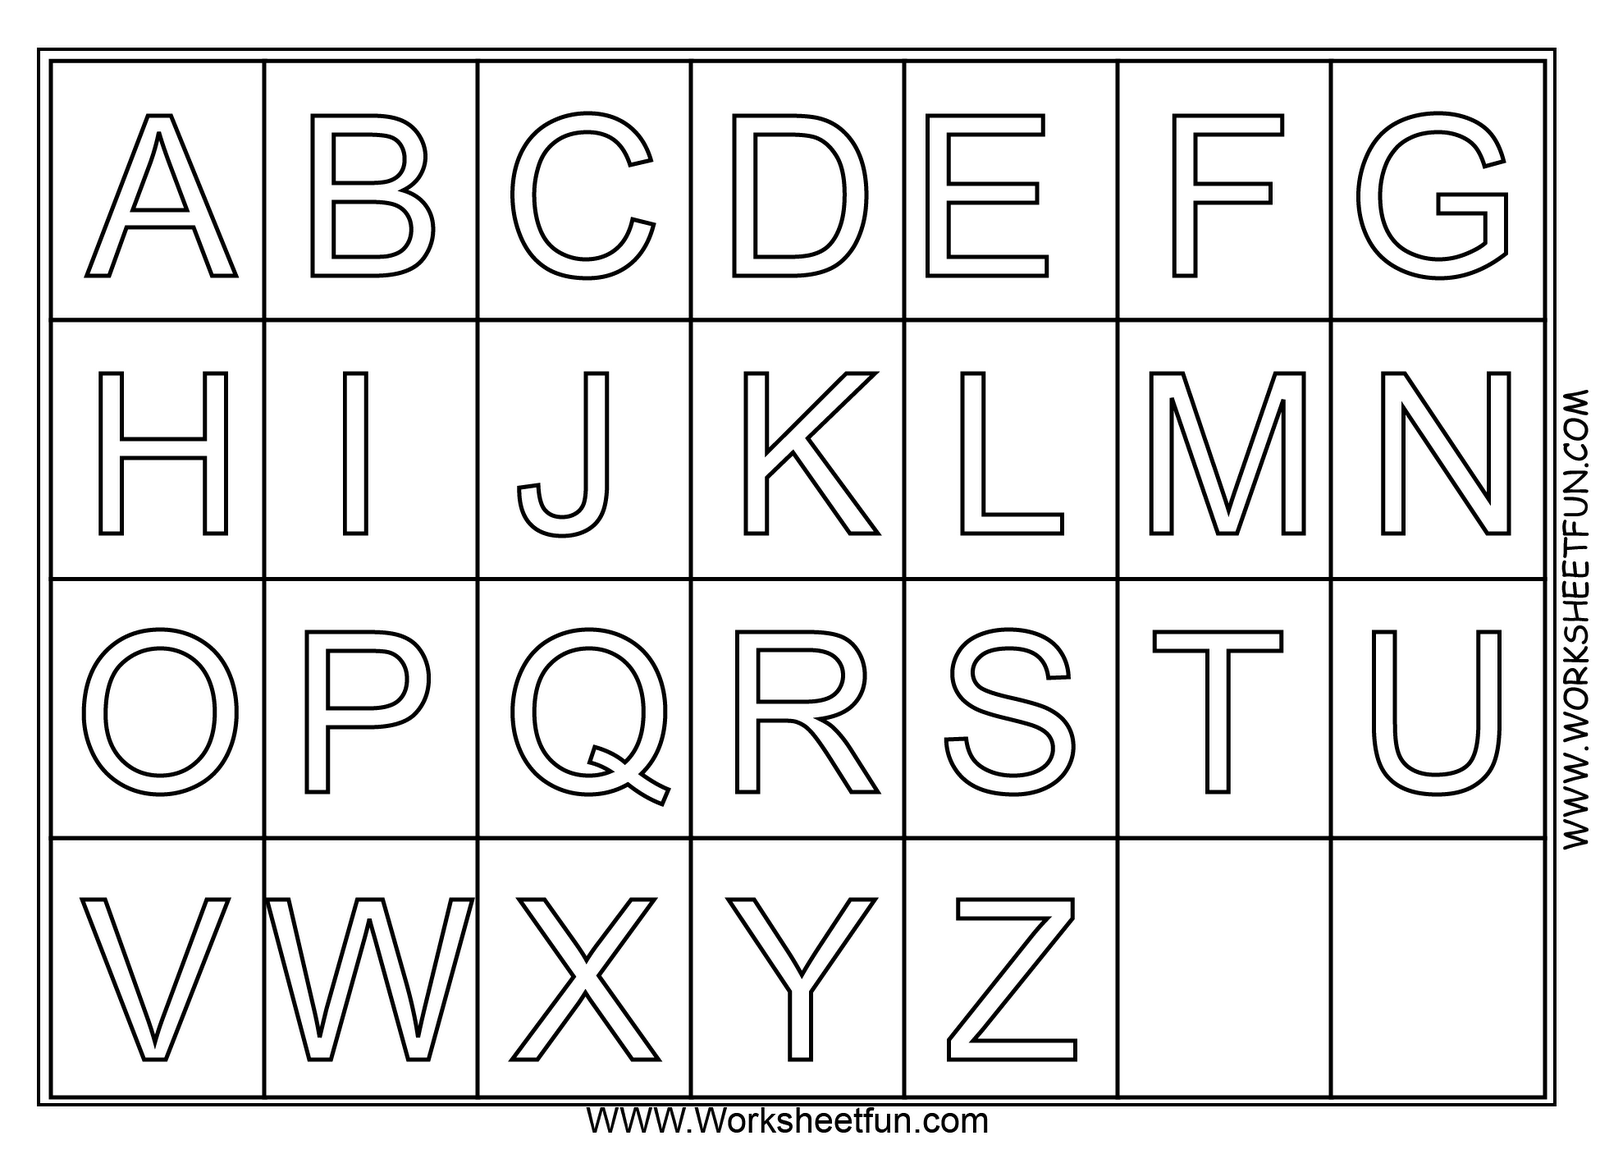 Worksheet Printable Letters For Preschool 10 best images about learning on pinterest count kids numbers and a z alphabet coloring pages download print for free pre k preschool activities cards pages